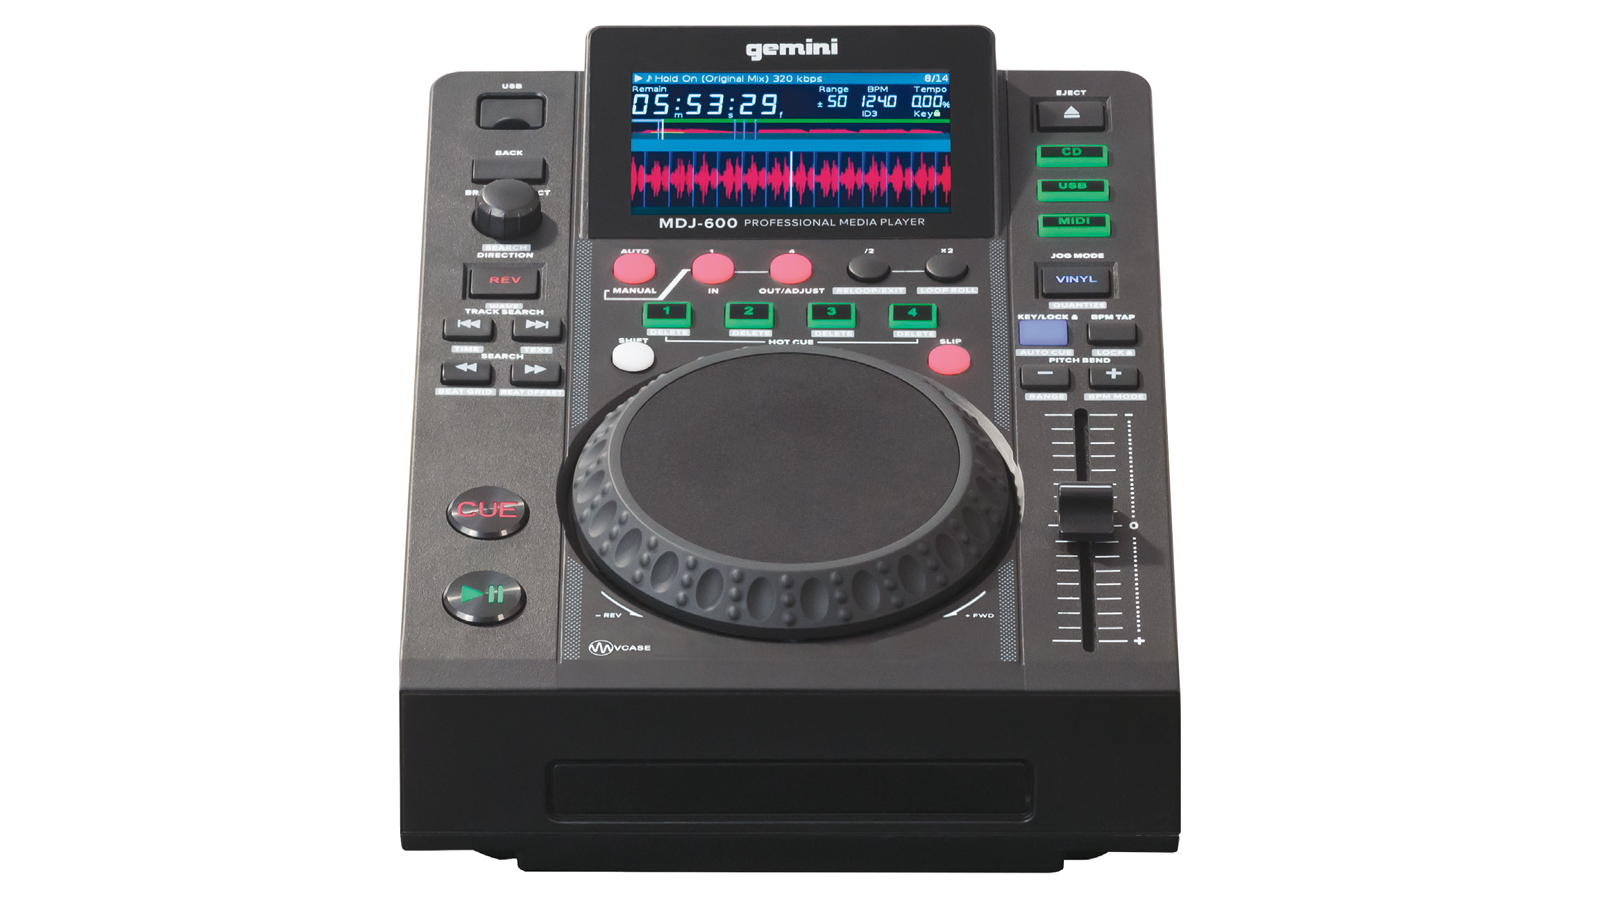 Gemini MDJ-600 Player